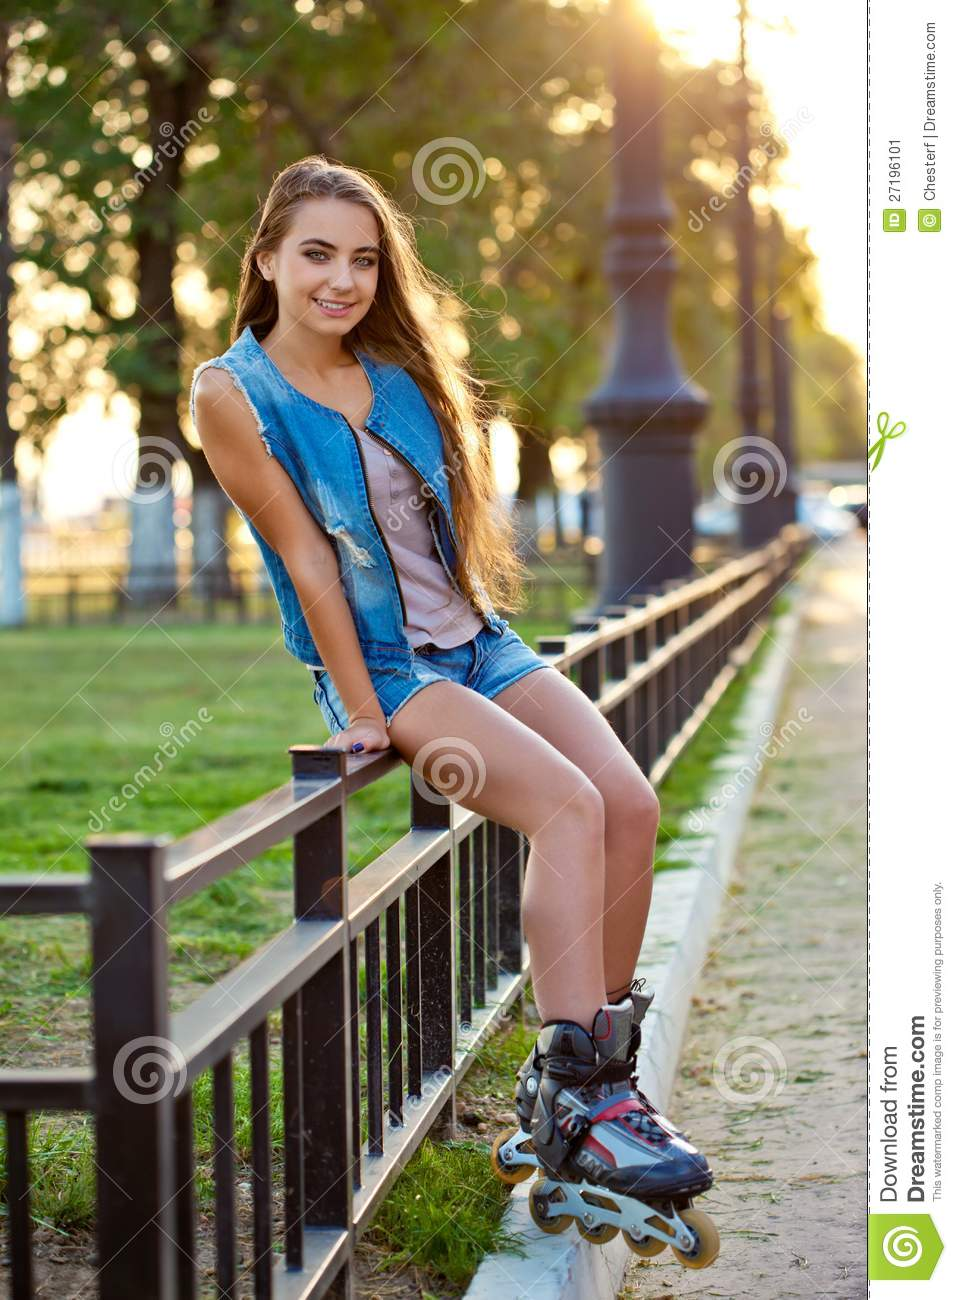 roller girl wearing jeans sitting on iron fence stock